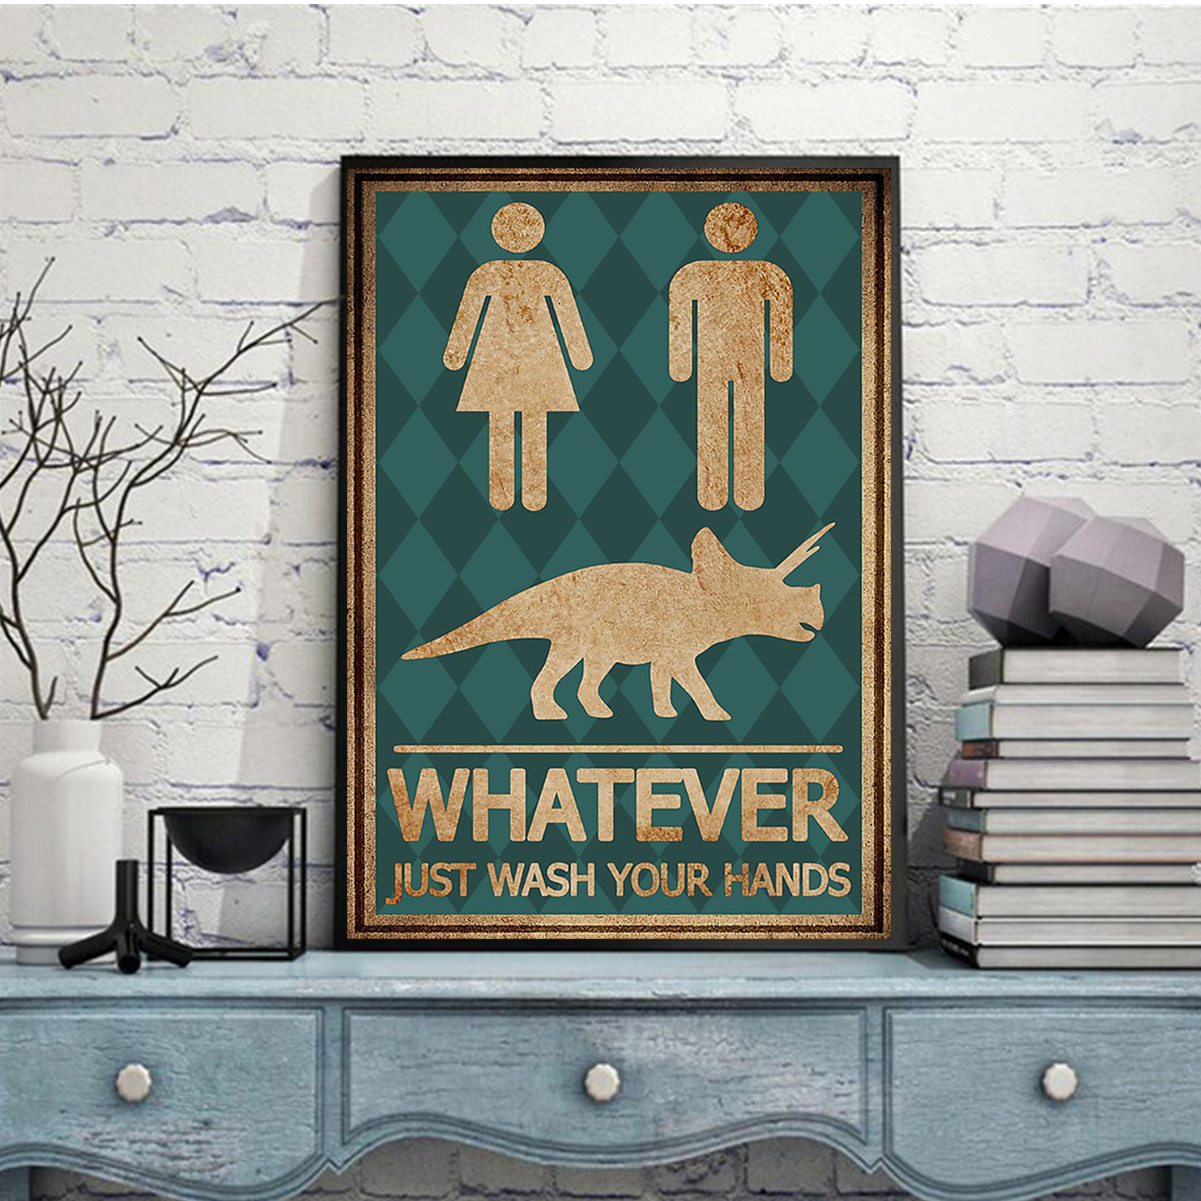 Whatever just wash your hands poster A2